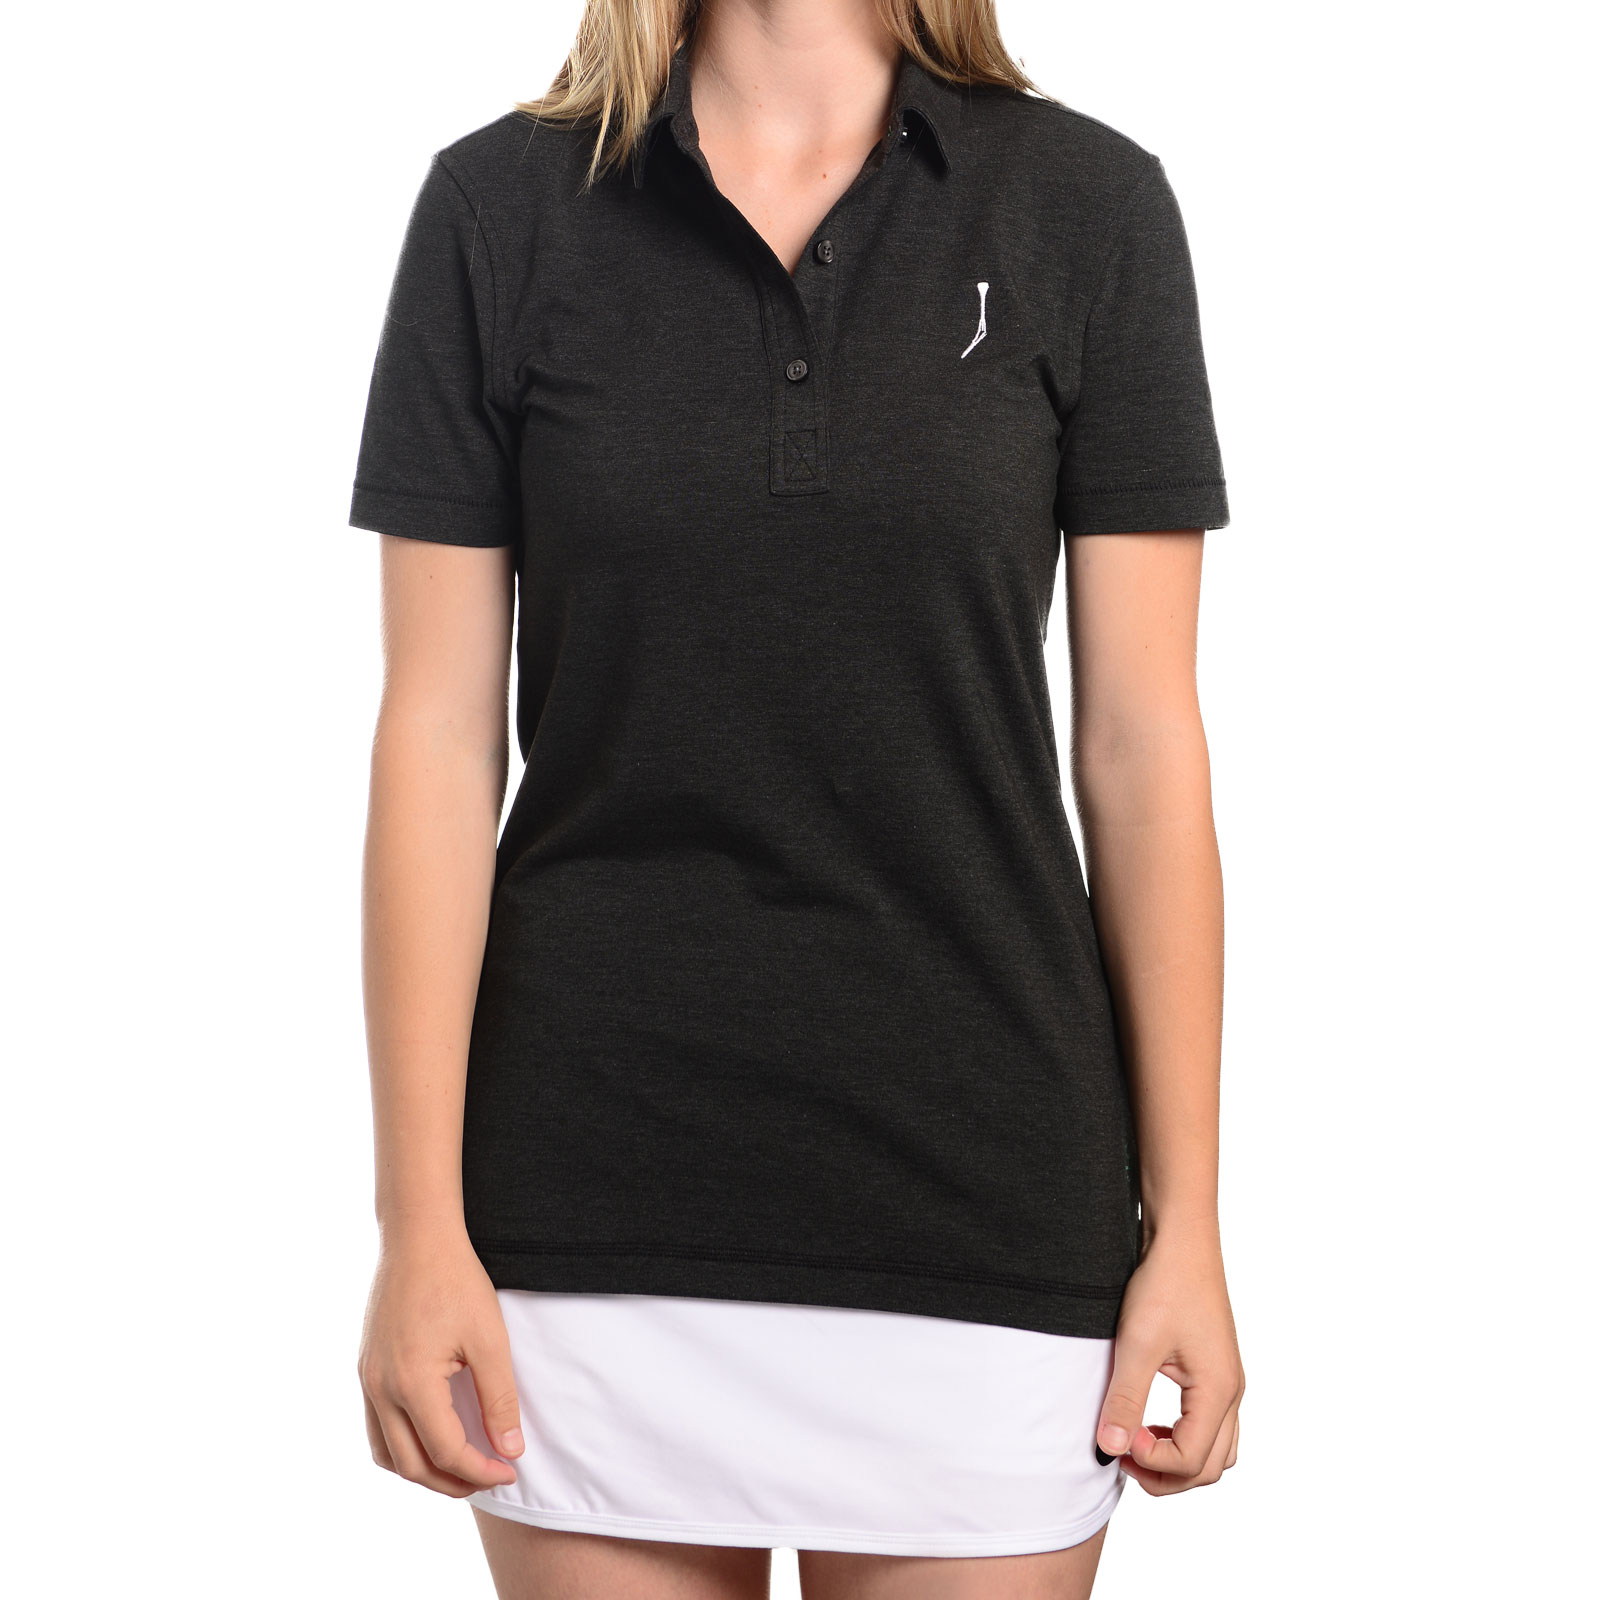 TGJ x Linksoul Women's Drytech Polo - Gray